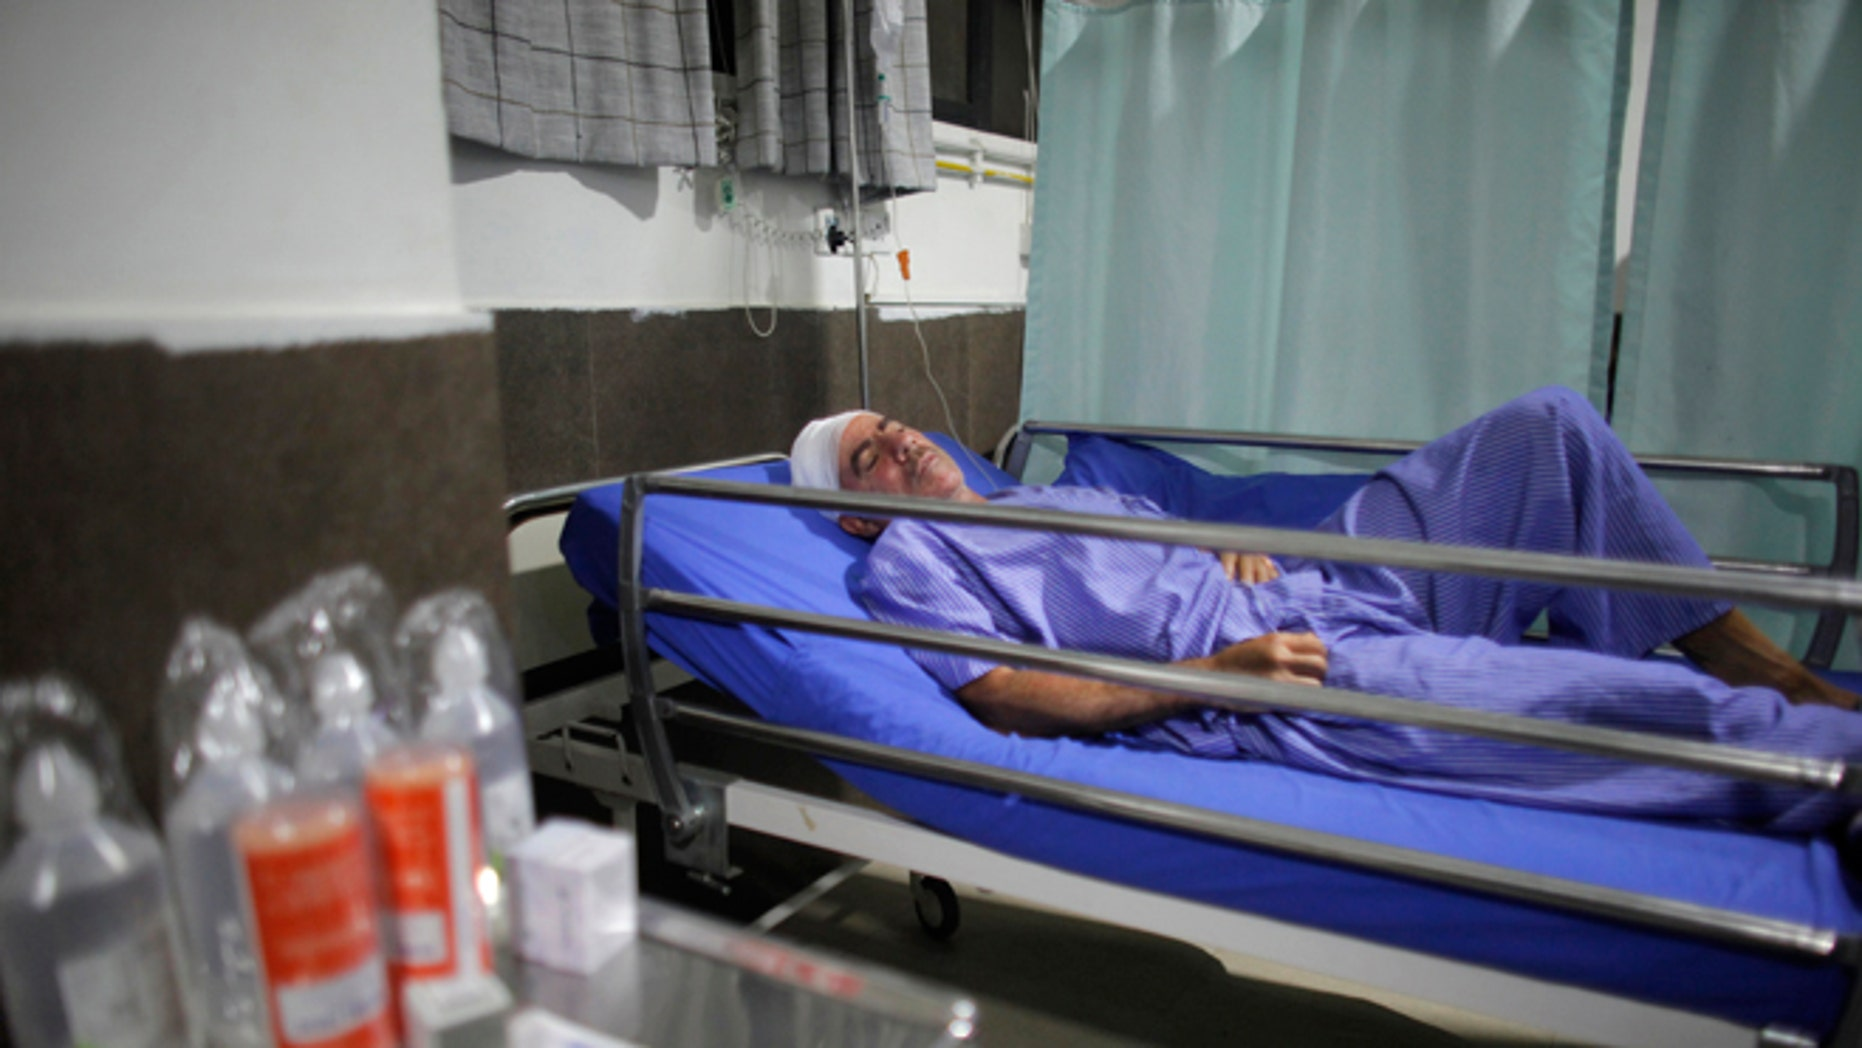 Spanish trekker Juan Mari Eguillor, 68, who survived a landslide receives treatment at Vayodha Hospital in Kathmandu, Nepal, Thursday, Sept. 22, 2016. A Spanish trekker and three Nepalese guides were killed Thursday and more than a dozen injured when they were hit by a landslide triggered by heavy rain in Nepal's northern mountains, officials said.(AP Photo/Niranjan Shrestha)